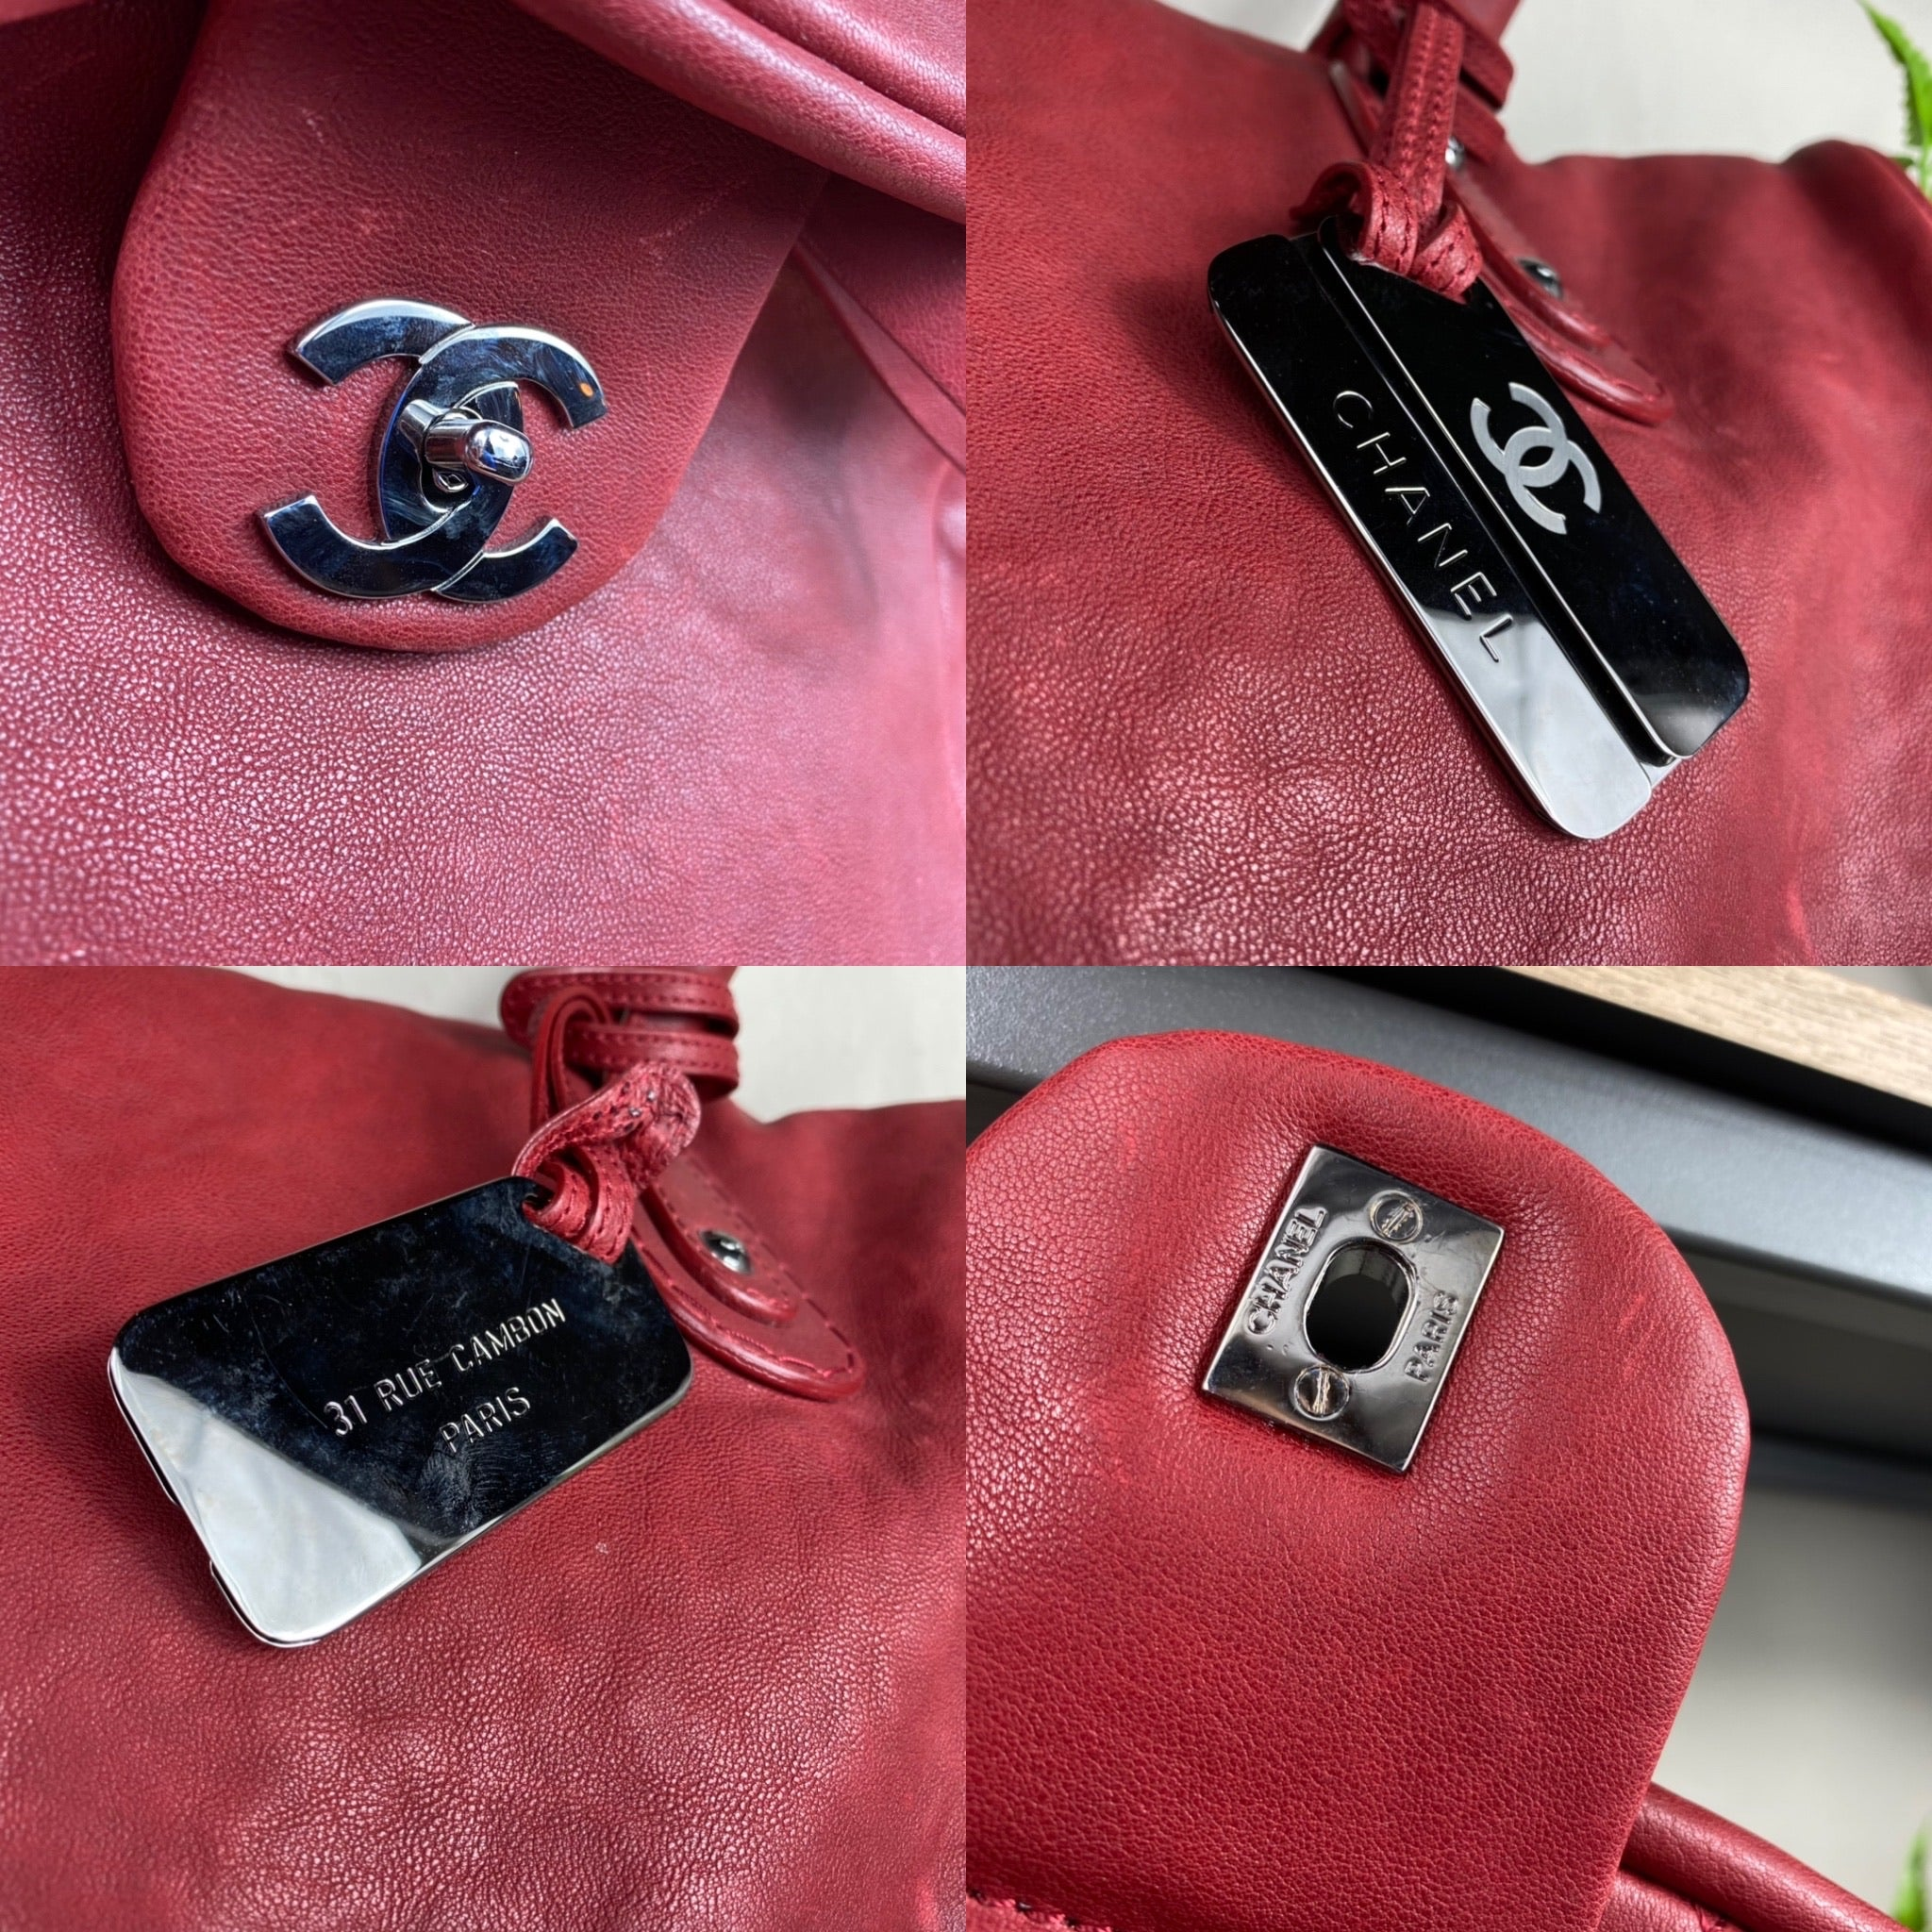 Chanel Large Leather CC Travel Bag